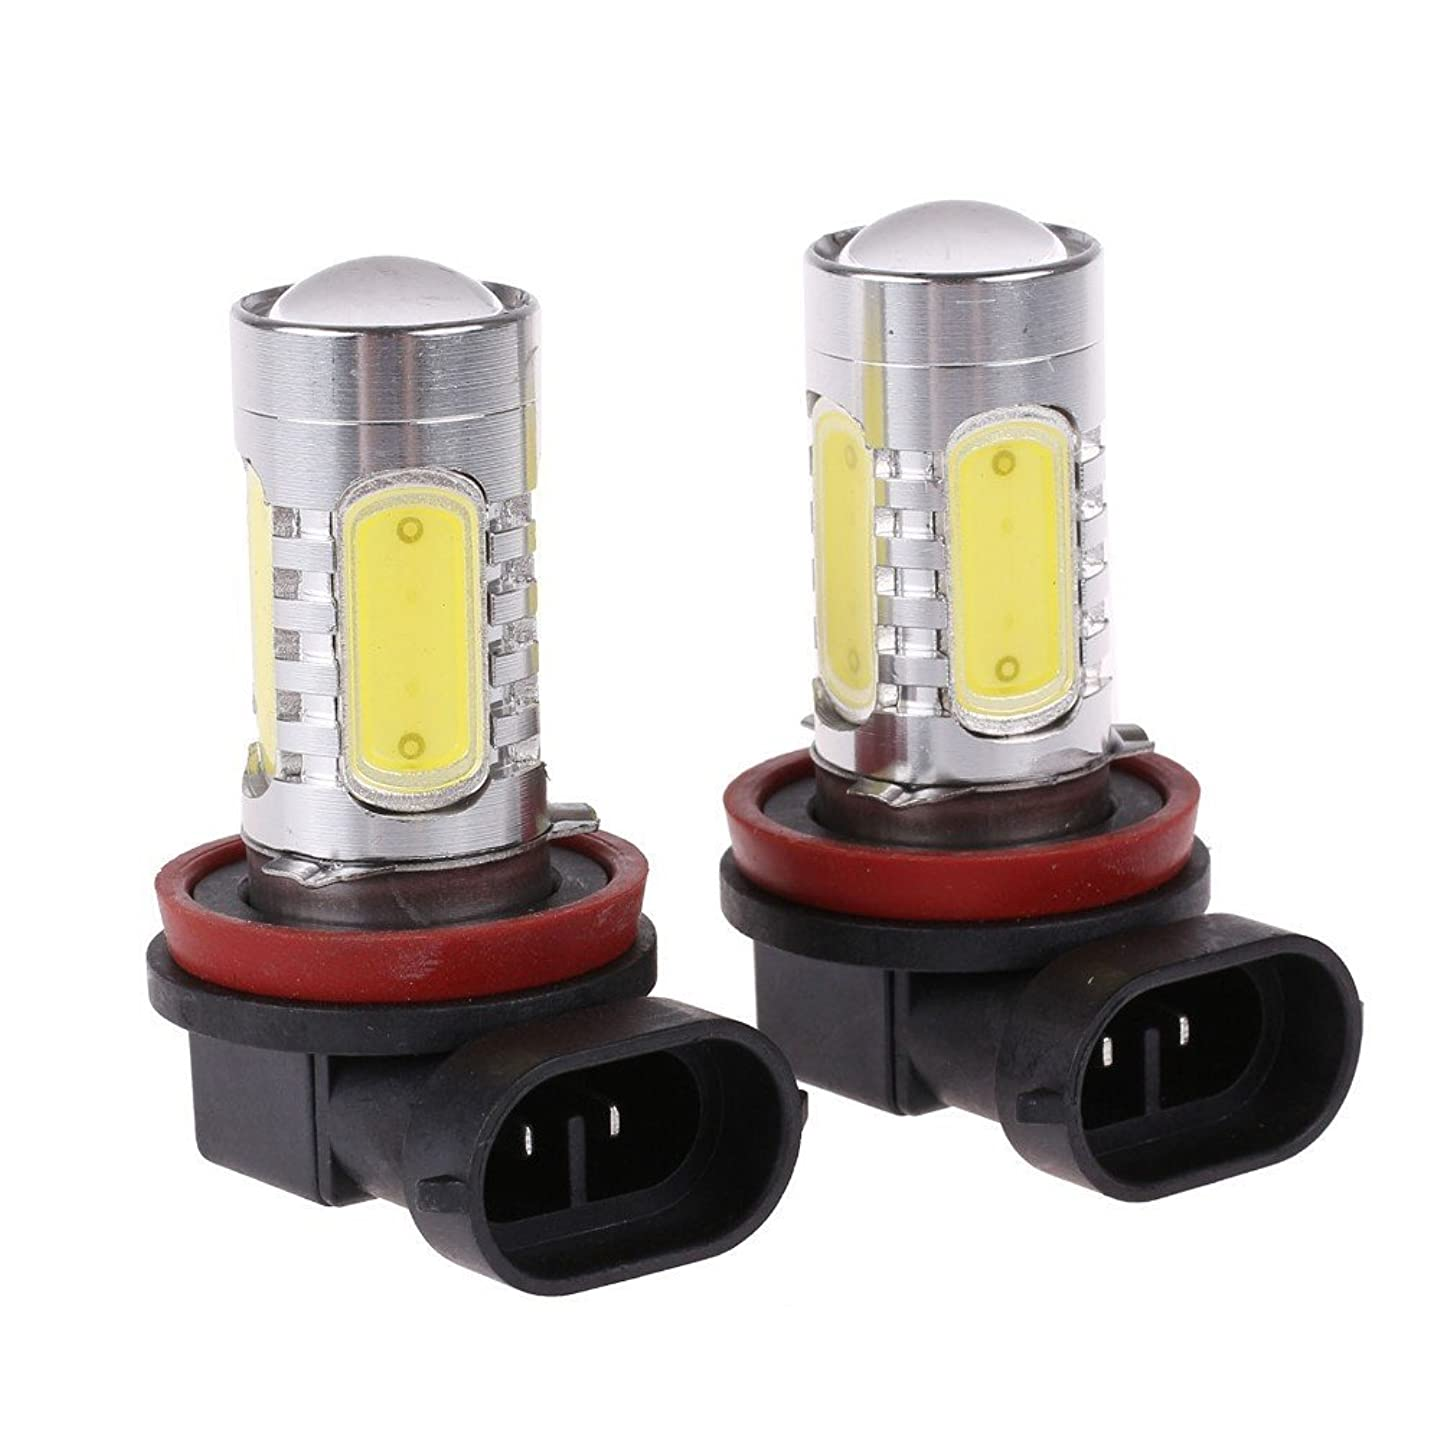 LED Fog Light Bulb Replacements - Extremely Amber Yellow LED Lights Bulbs for Fog Light Lamps Replacement [H11, H16, H8, H9]